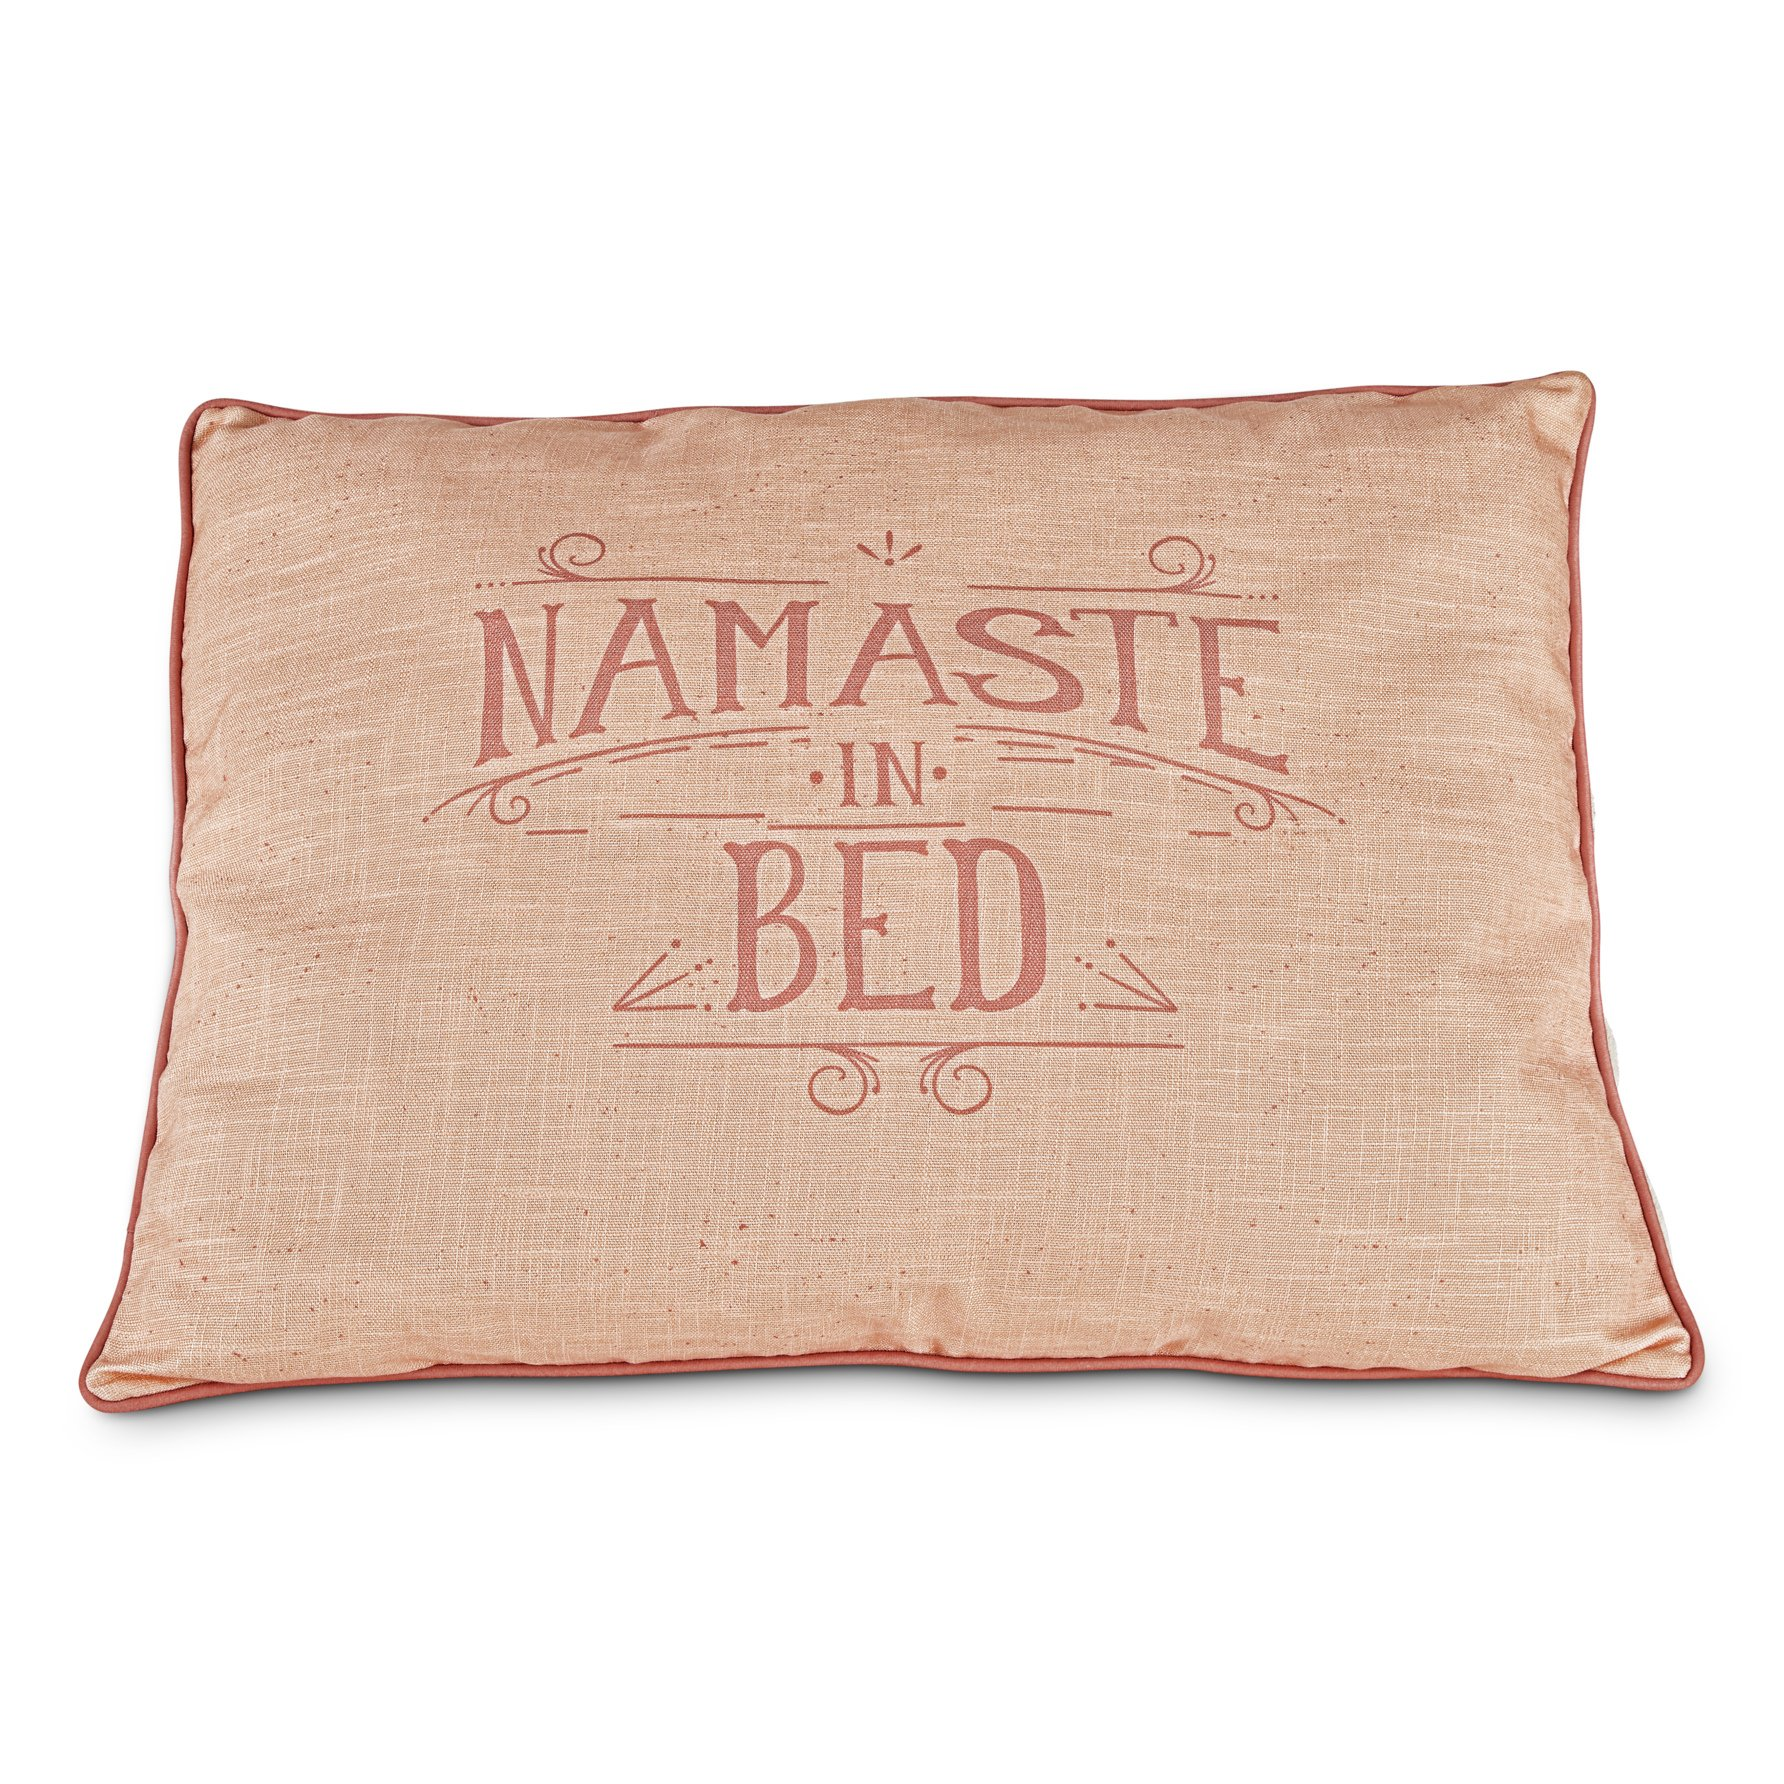 You & Me Namaste in Bed Pillow Dog Bed | Petco | Tuggl